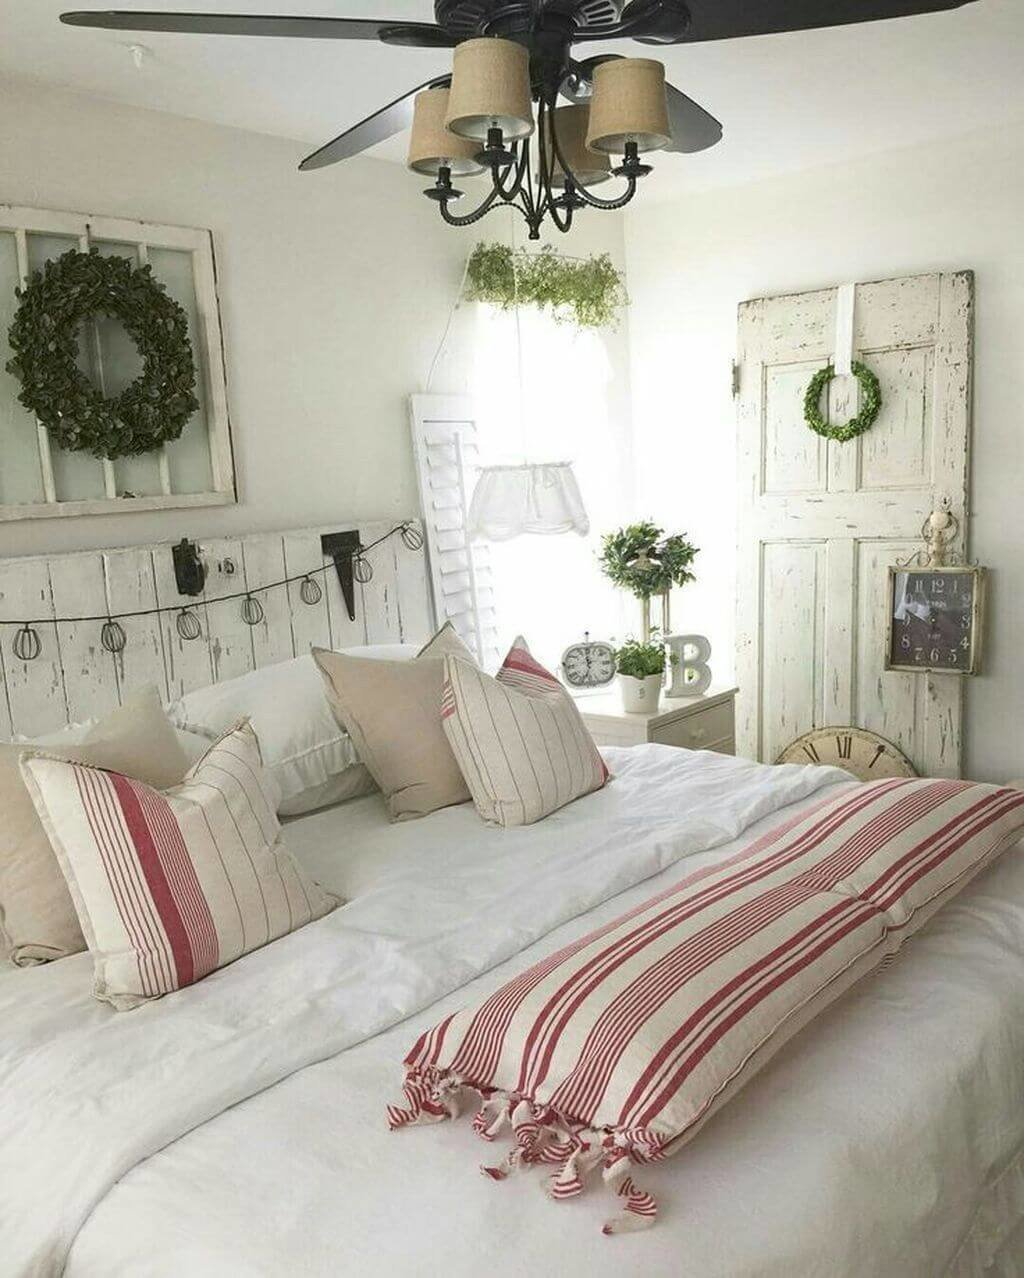 Best Red And White Country Bedroom Ideas Www Indiepedia Org With Pictures